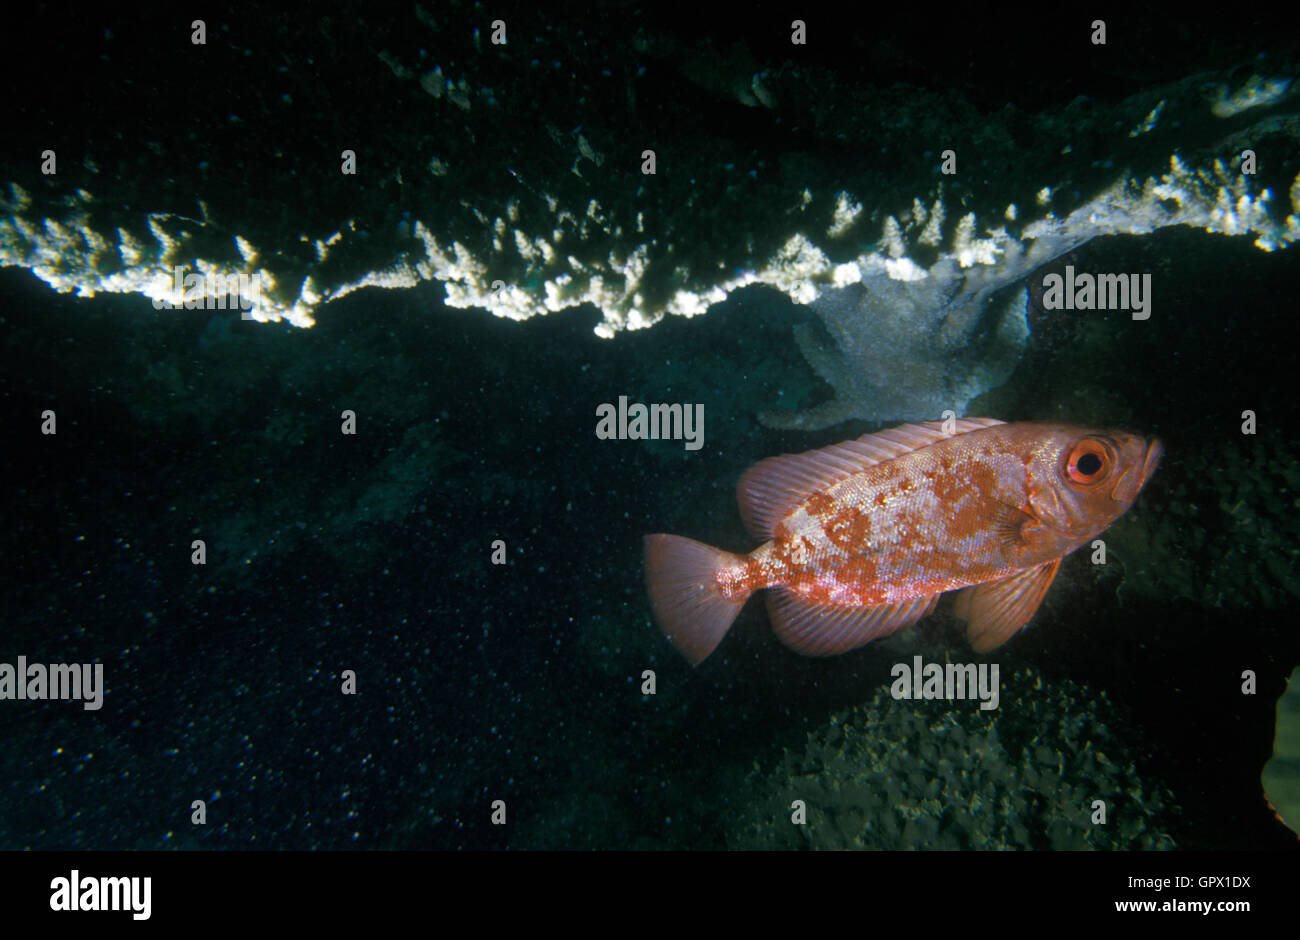 Paeony bulleye, Priacanthus blochii. Hide under Acropora coral table. Gulf of Adan, Djibouti - Stock Image